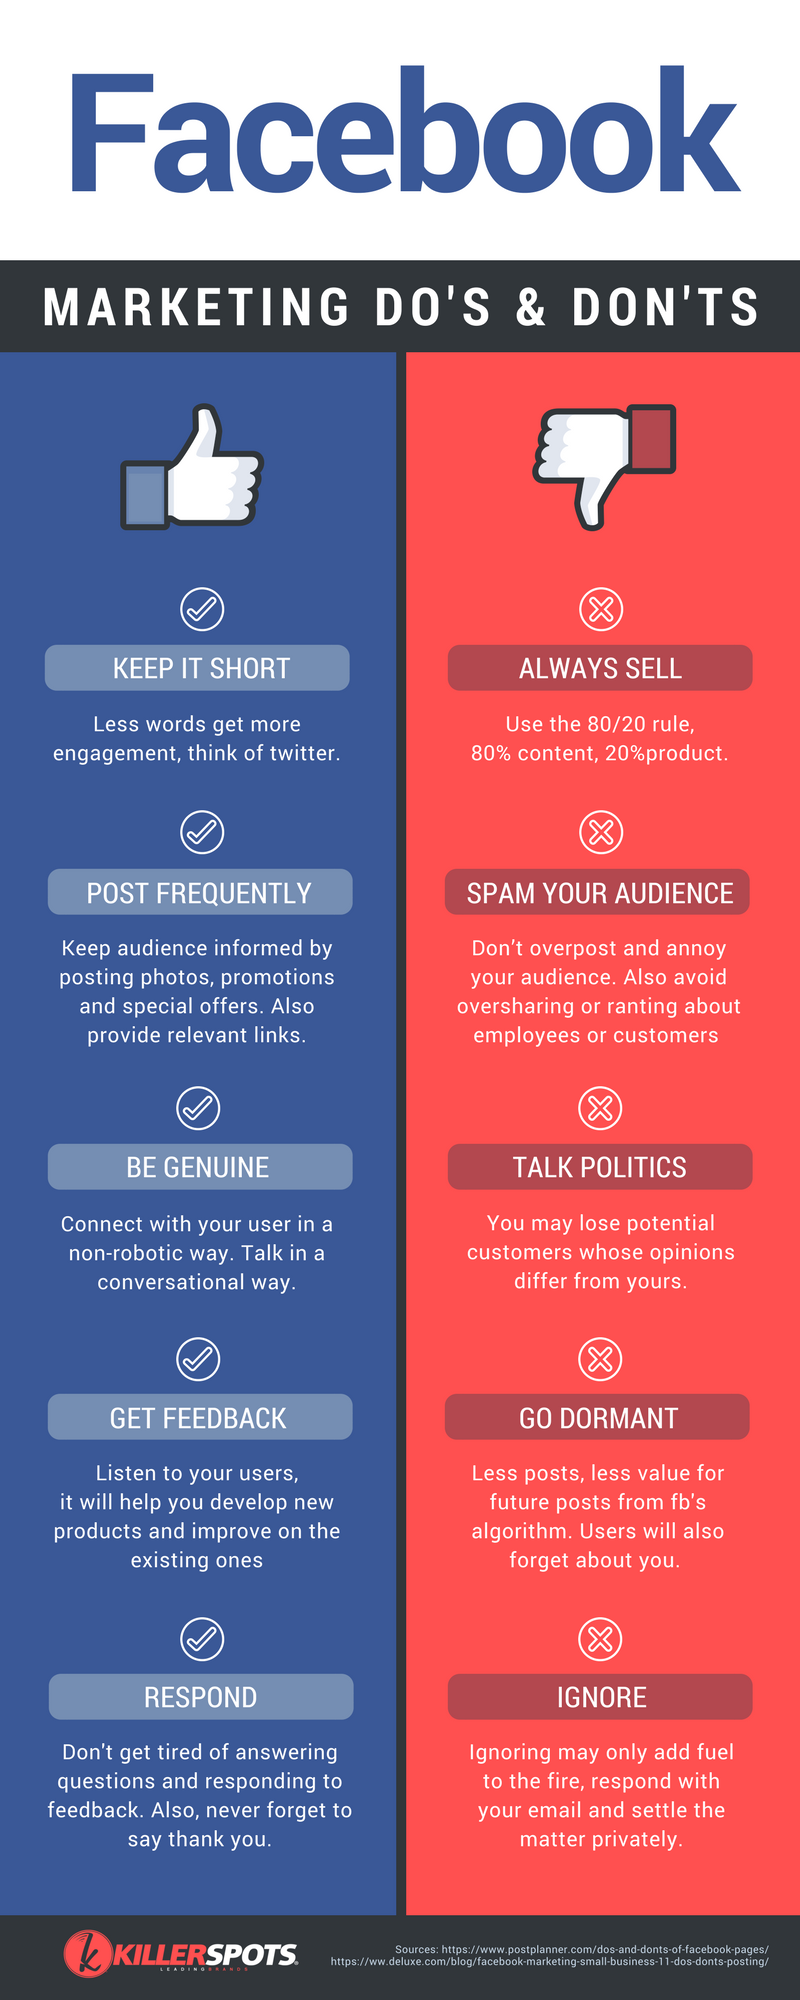 facebook marketing dos and donts